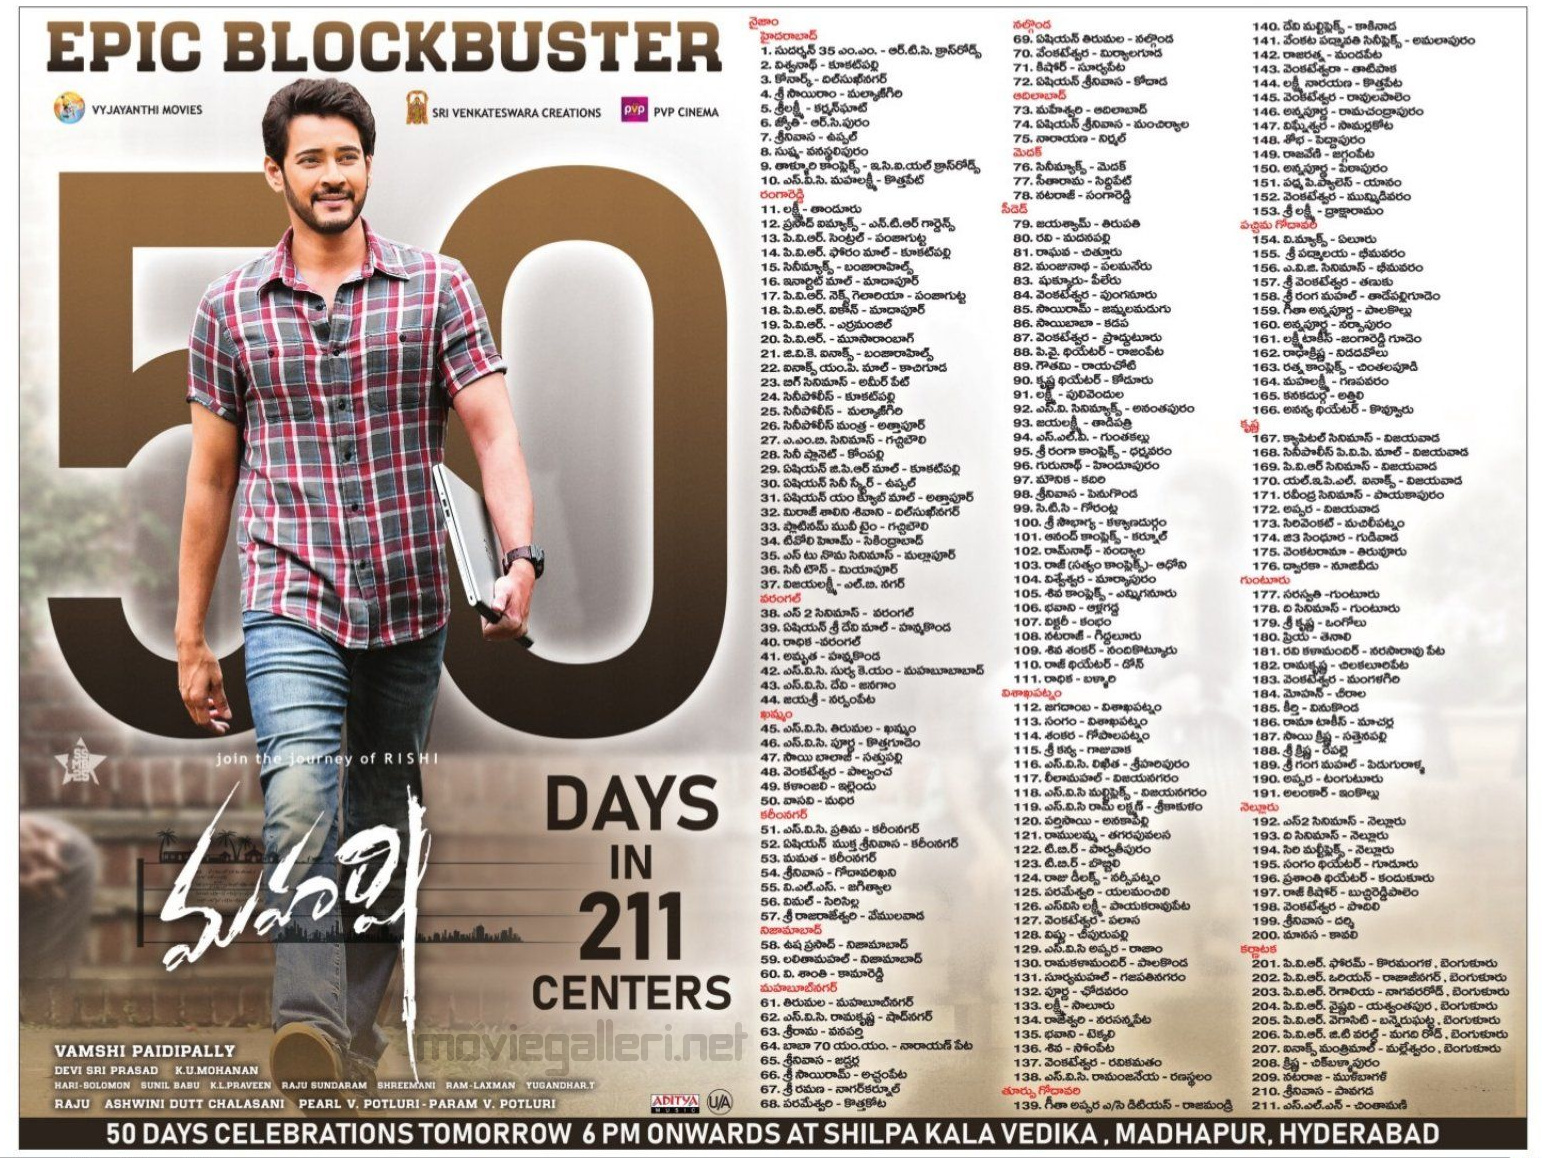 Mahesh Babu Maharshi Movie 50 Days In 200 Centers Theater List Poster HD